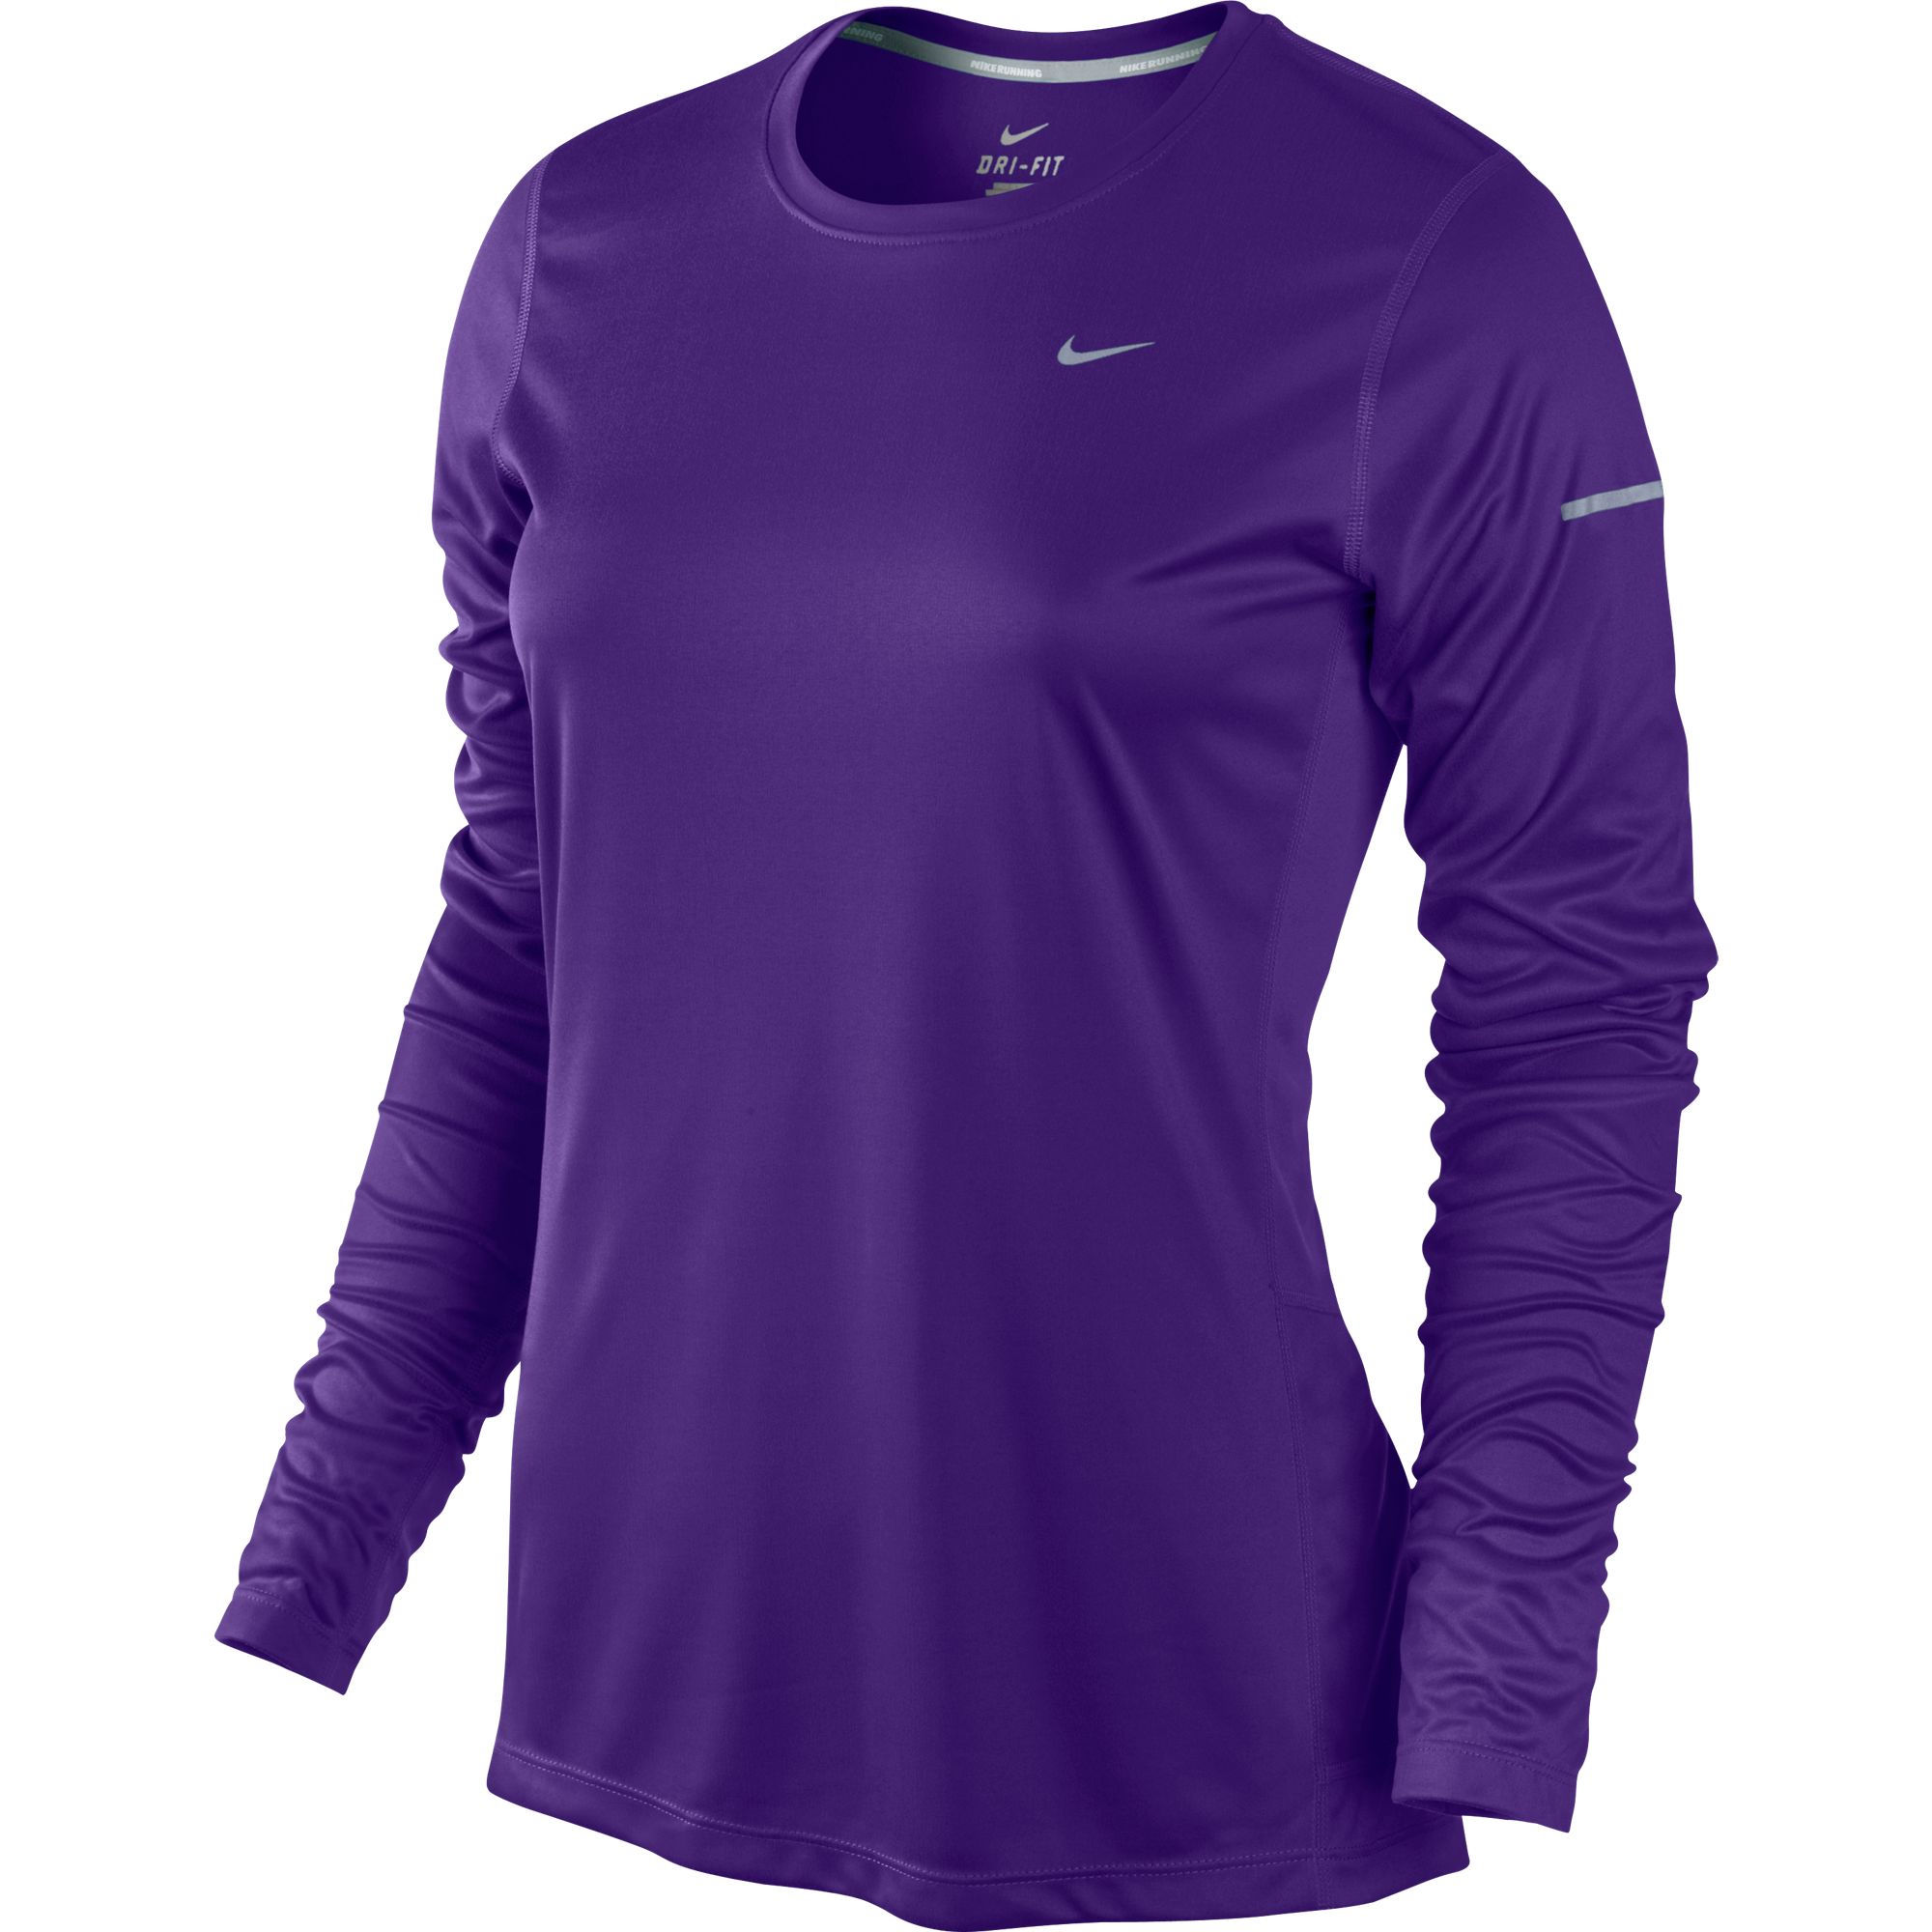 Women's Tops Running Long Sleeve Shirts. Running can inspire and evoke a number of feelings. Maybe you run to feel fast, confident, or just alive. Whatever the reason, don't let weather slow you down. adidas designs women's tops running long sleeve shirts to be worn out there days a year.